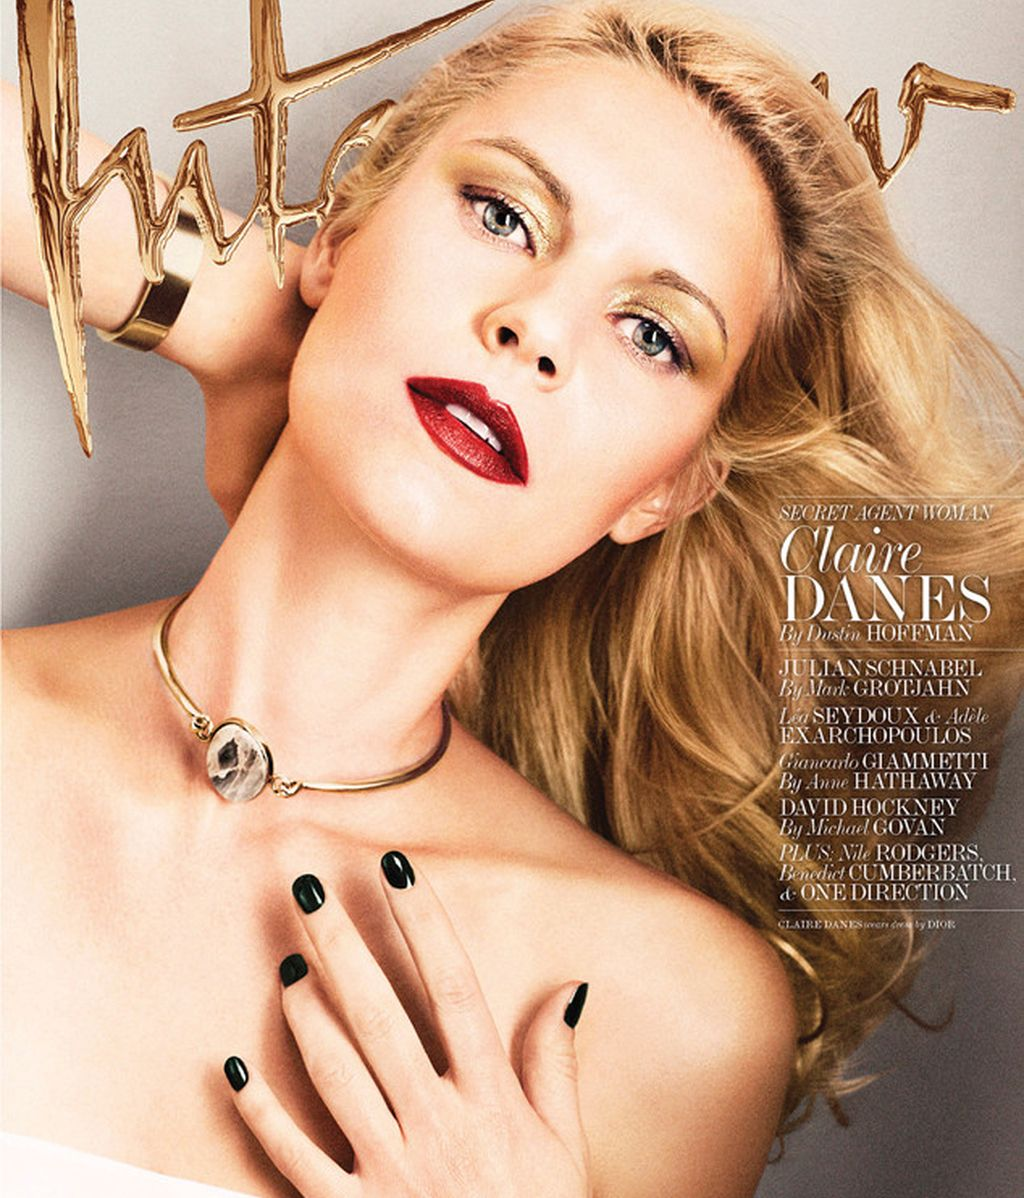 Claire Danes posa en topless para la revista 'Interview'